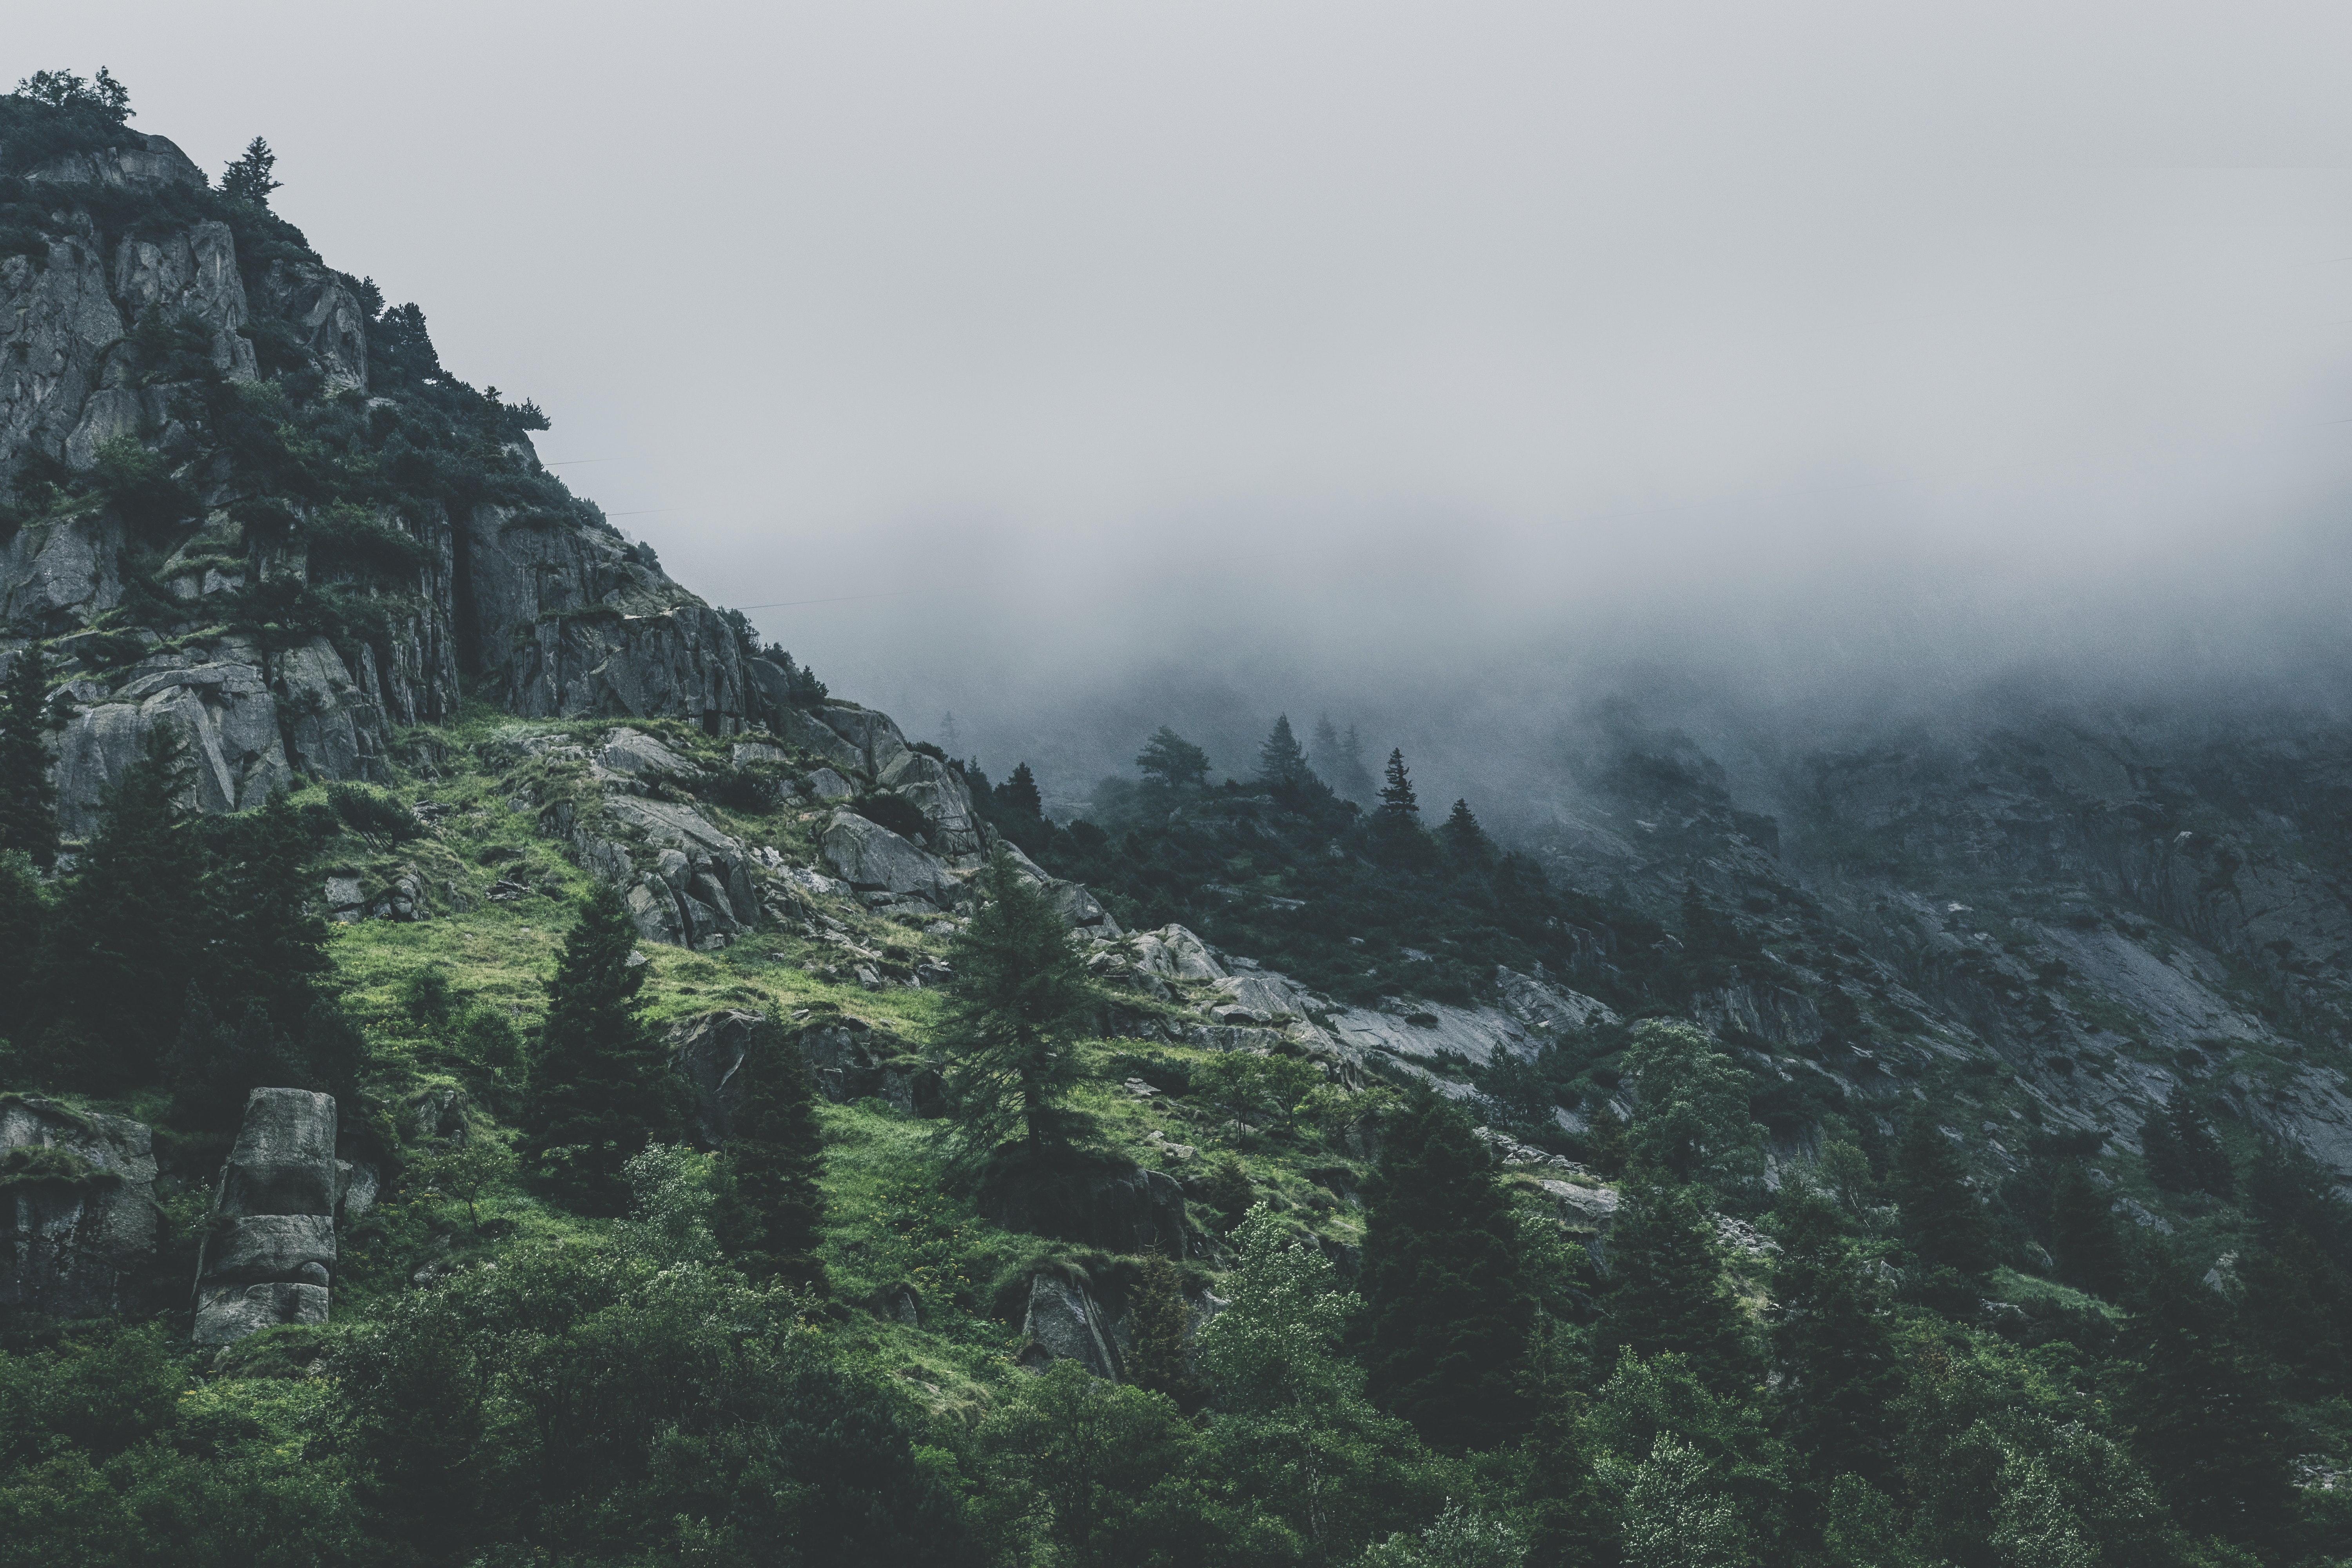 Green Leafed Trees during Fog Time, Alps, Mountain, Wilderness, Valley, HQ Photo